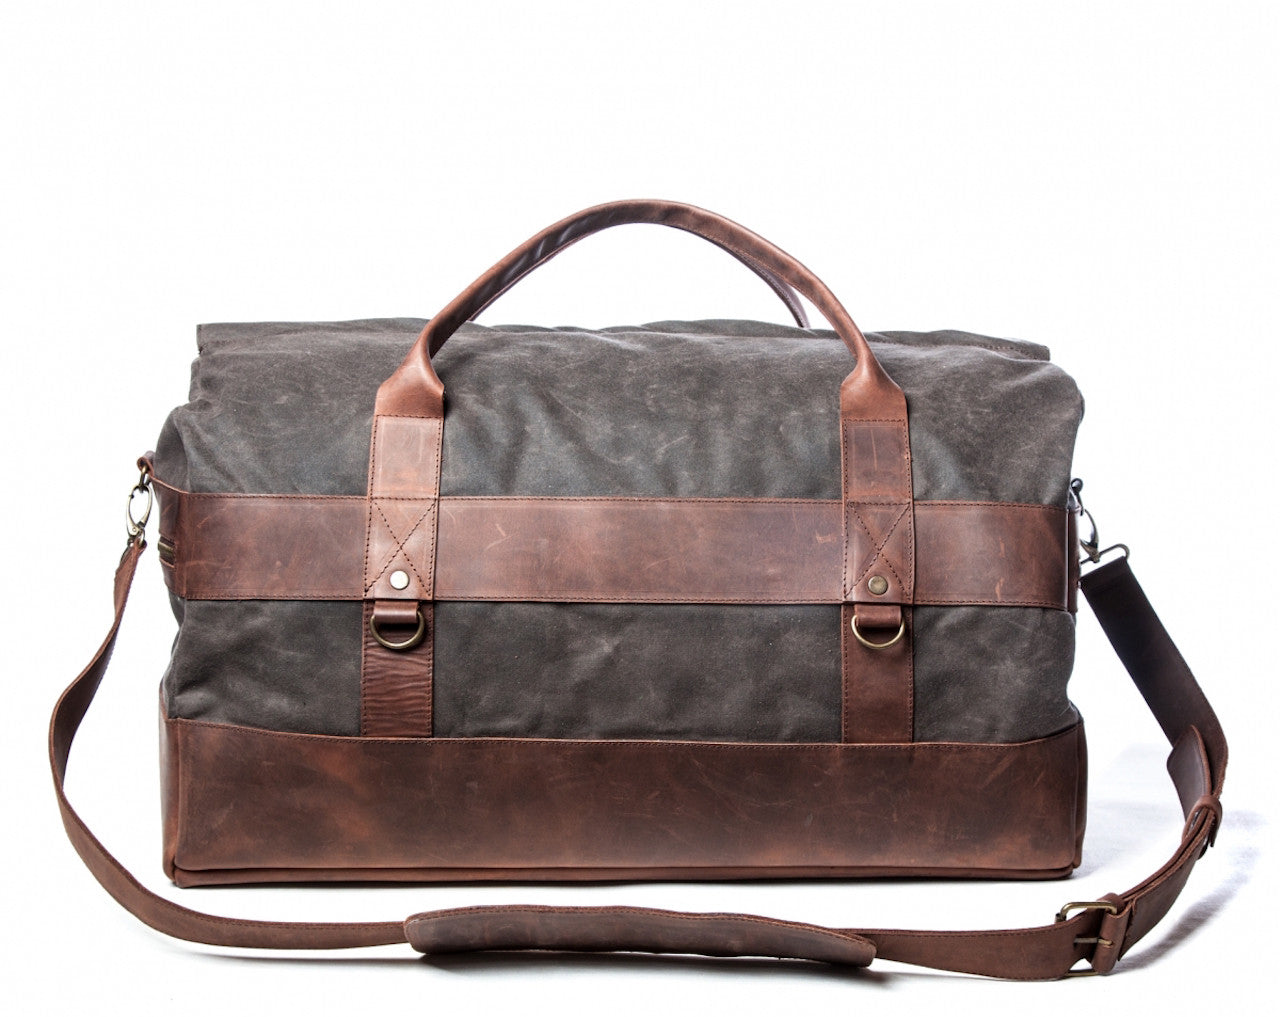 b7af707af63a Waxed Canvas Leather Weekender Duffel Bag for Men & Women - Gray w/ Brown